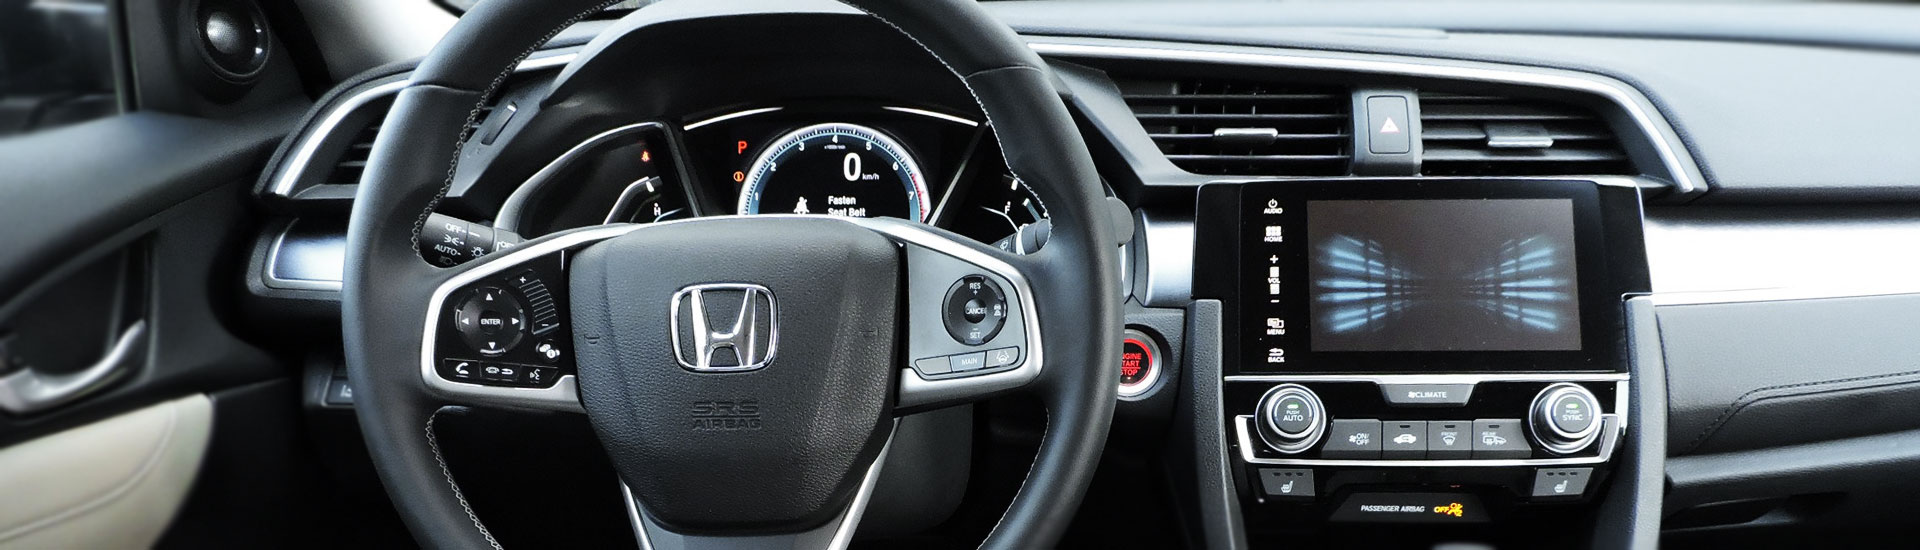 1995 Honda Accord Custom Dash Kits